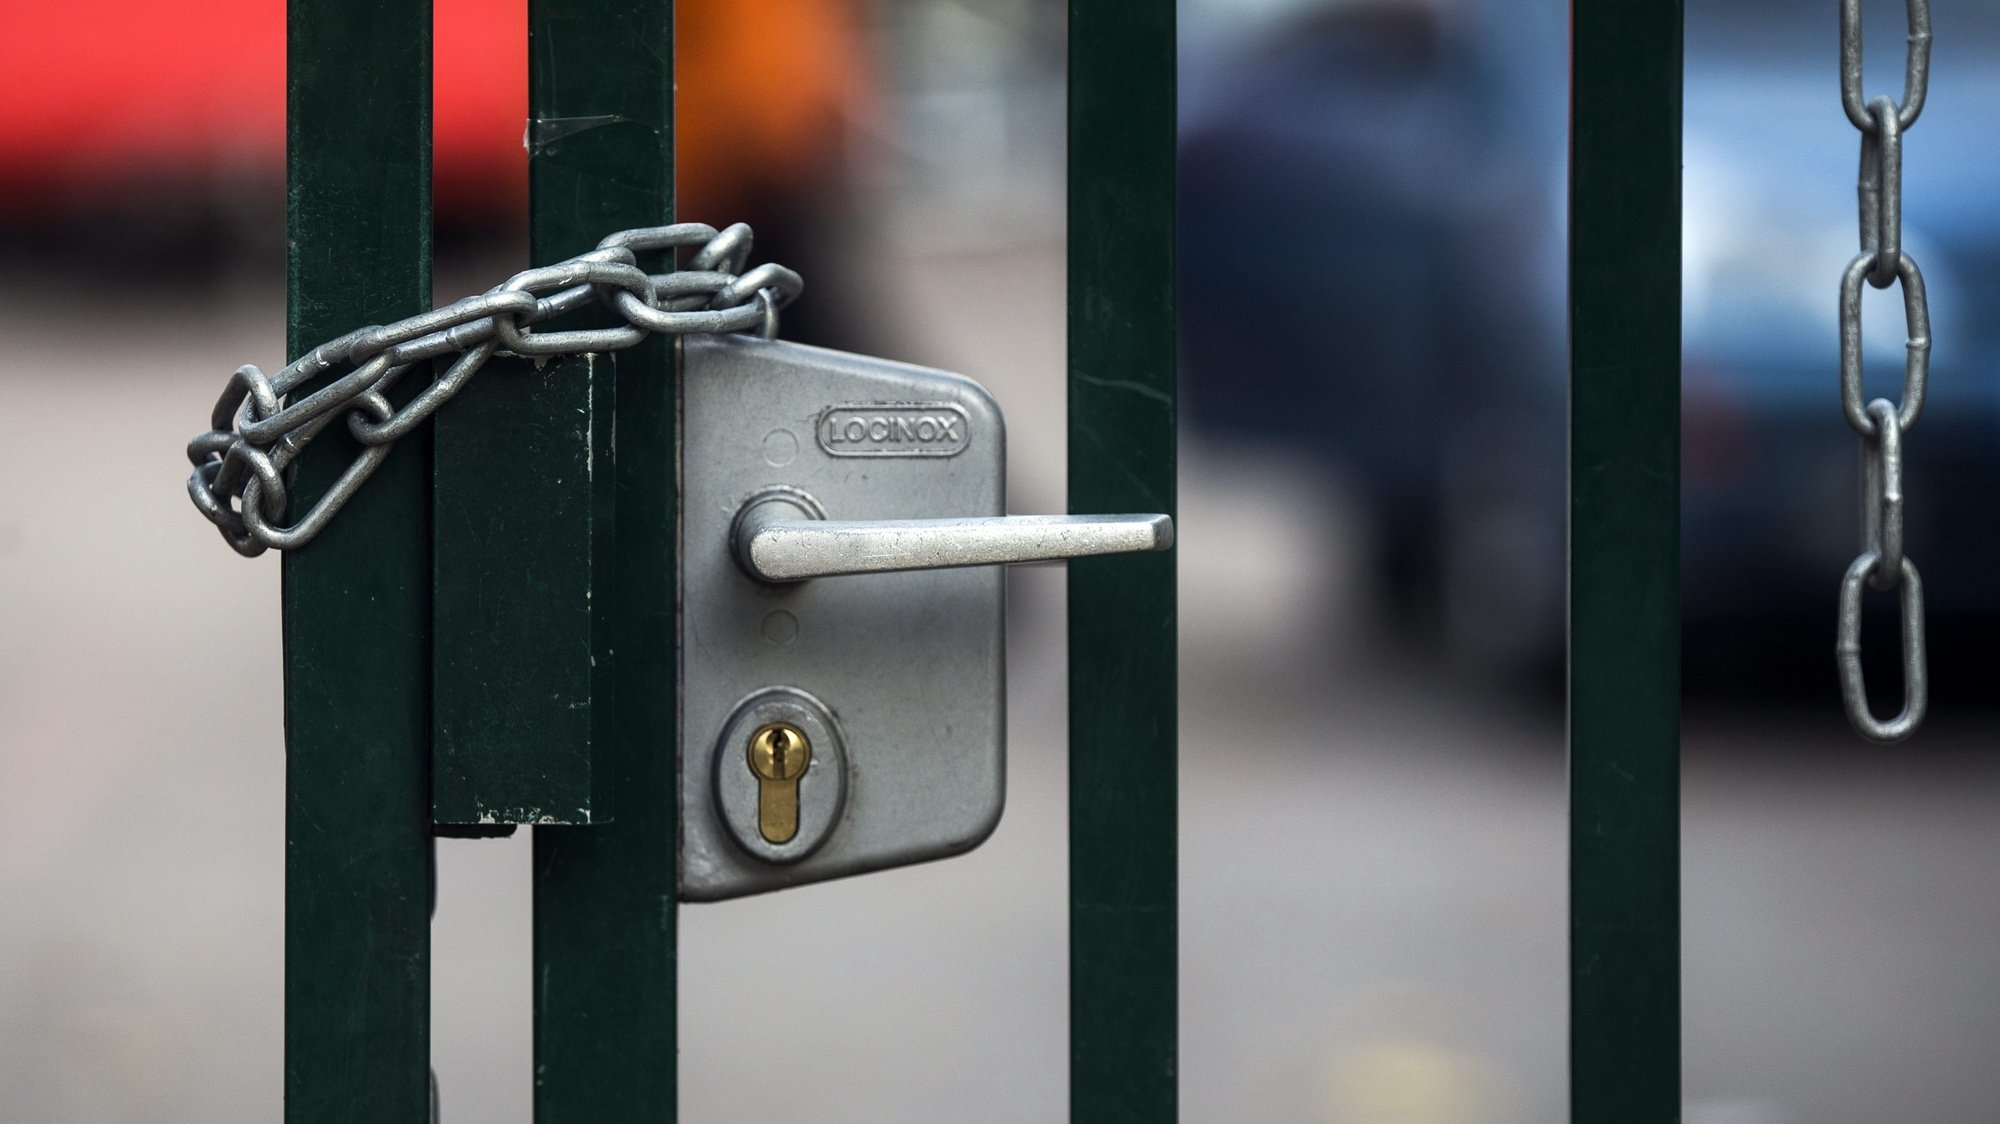 epa05010160 (28/31) The gate of the Jean-Quarre high school are locked by chains after migrants have been evacuated by the French police a week before, in the 19th district in Paris, France, 29 October 2015. About 1,300 migrants have been dispatched all over France to several shelters after the last big migrant camp in the Jean-Quarre secondary school was evacuated.  EPA/ETIENNE LAURENT PLEASE REFER TO THIS ADVISORY NOTICE (epa05010132) FOR FULL PACKAGE TEXT